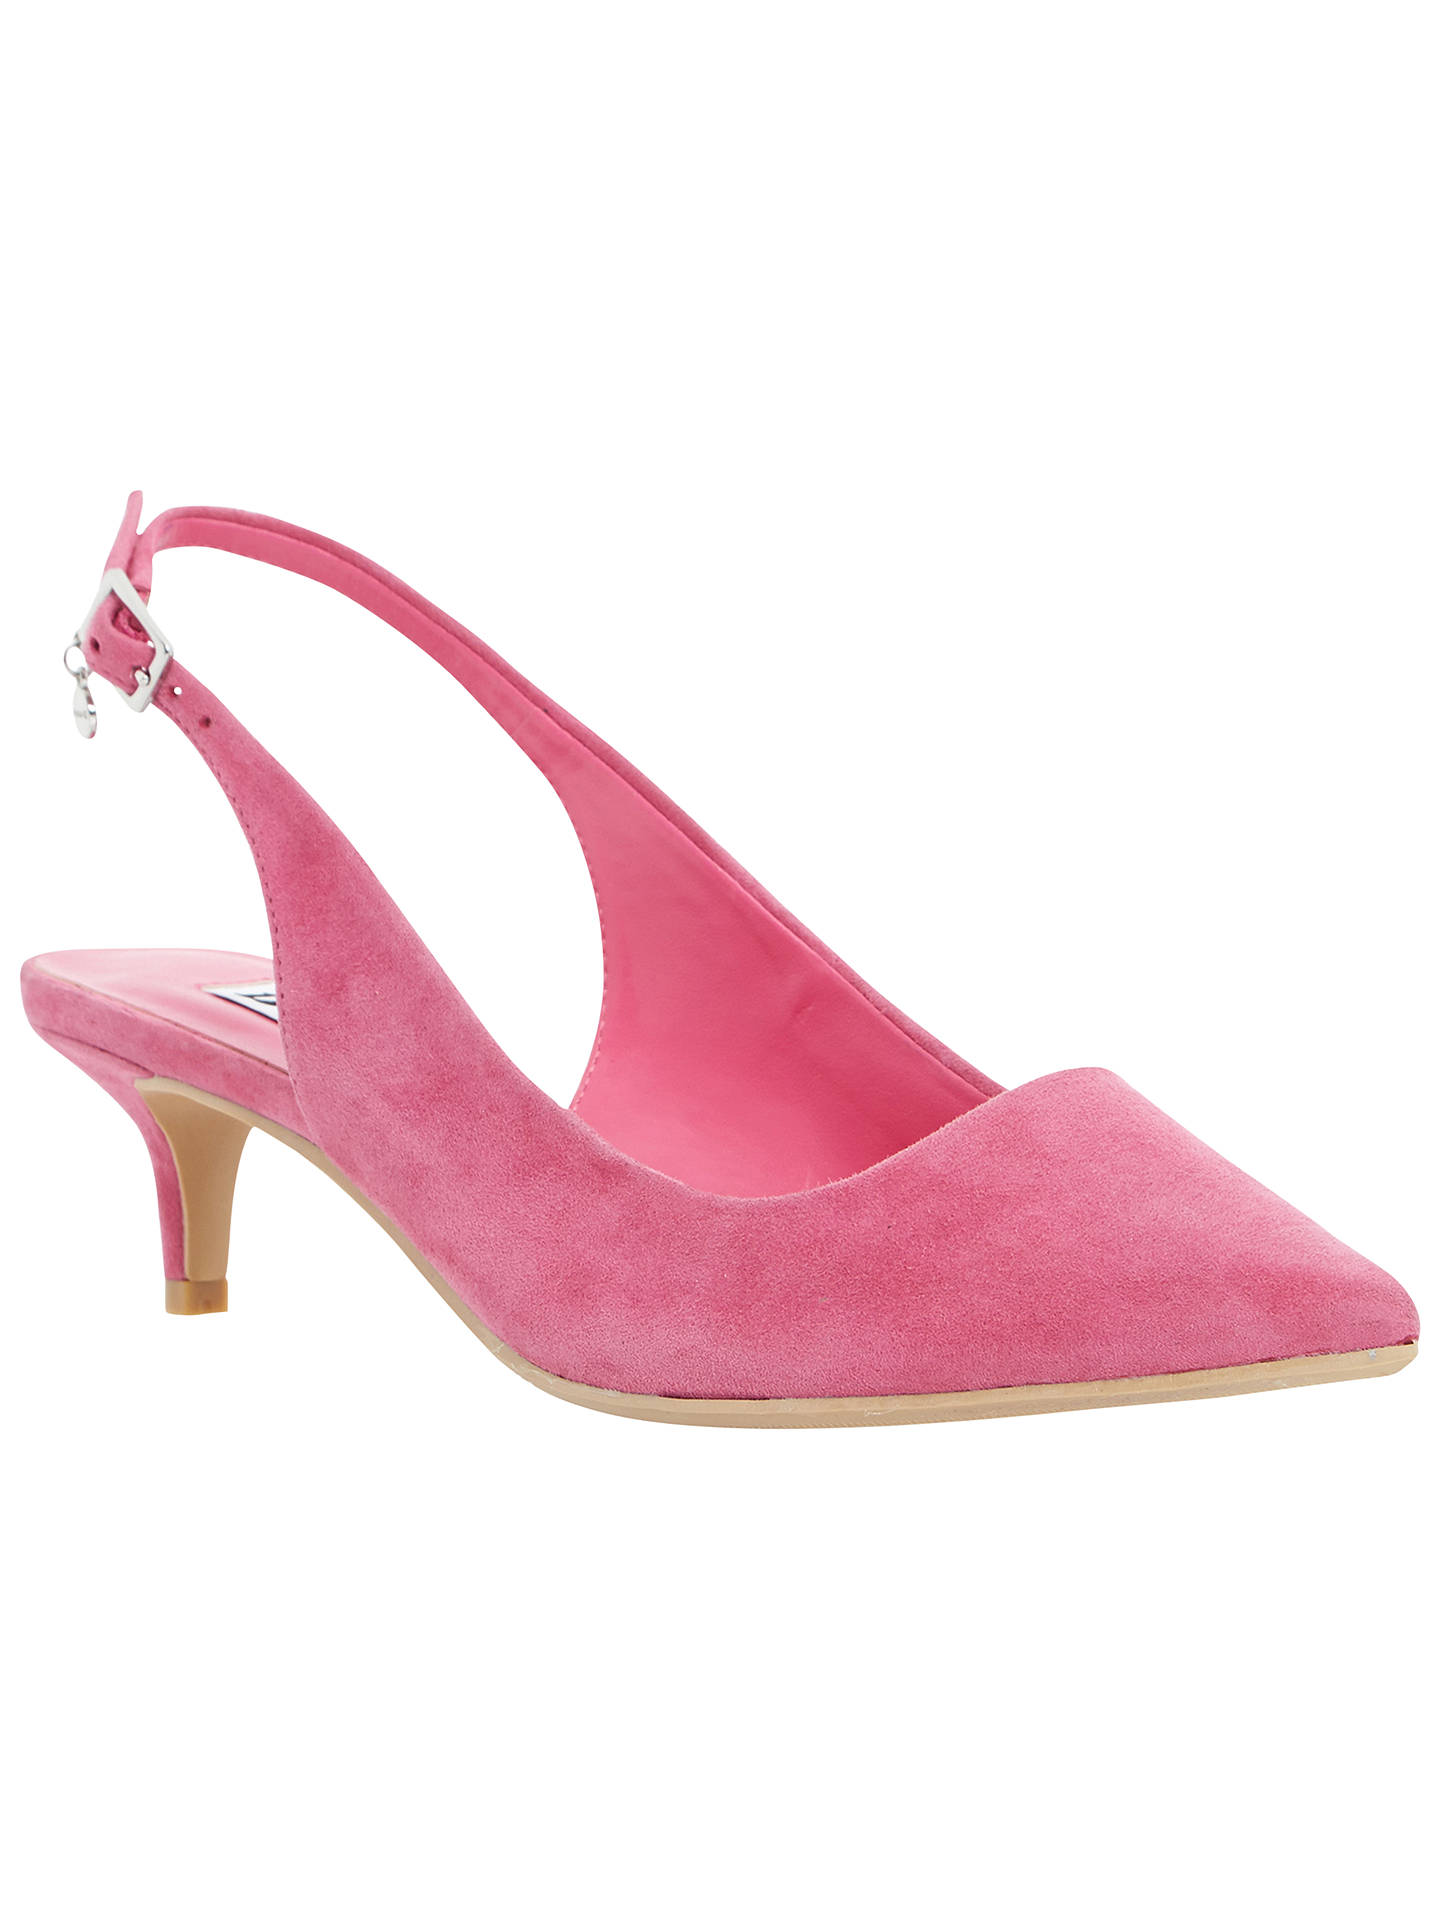 629aace5192 Dune Cathryn Slingback Kitten Heel Court Shoes, Pink Suede at John ...